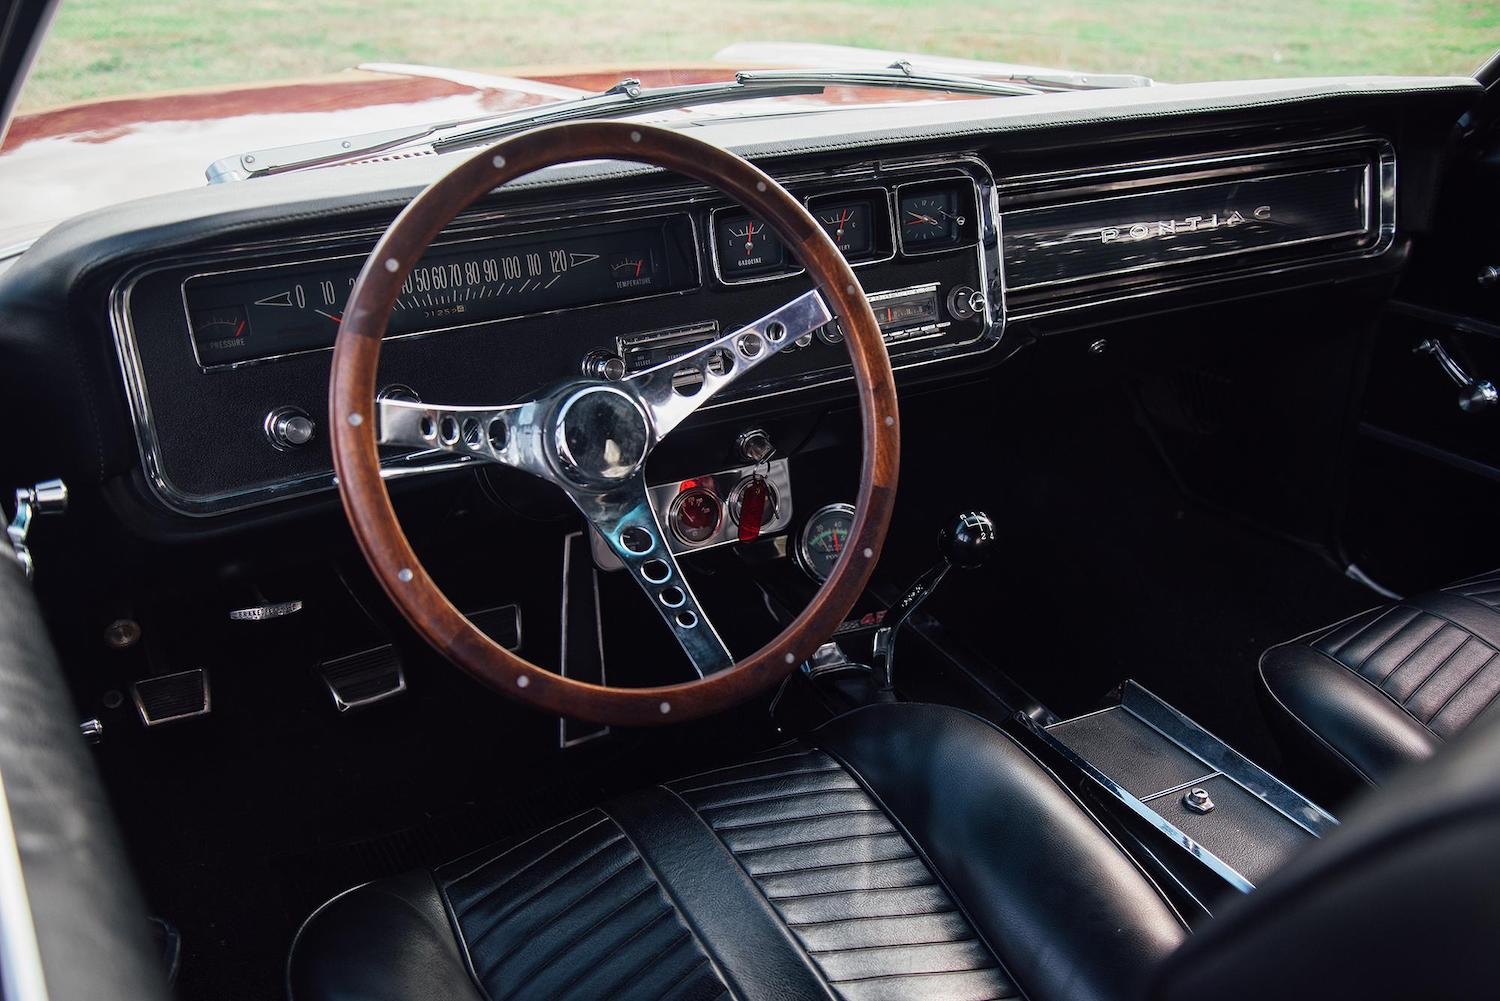 1966 red pontiac 2 plus 2 interior front dash